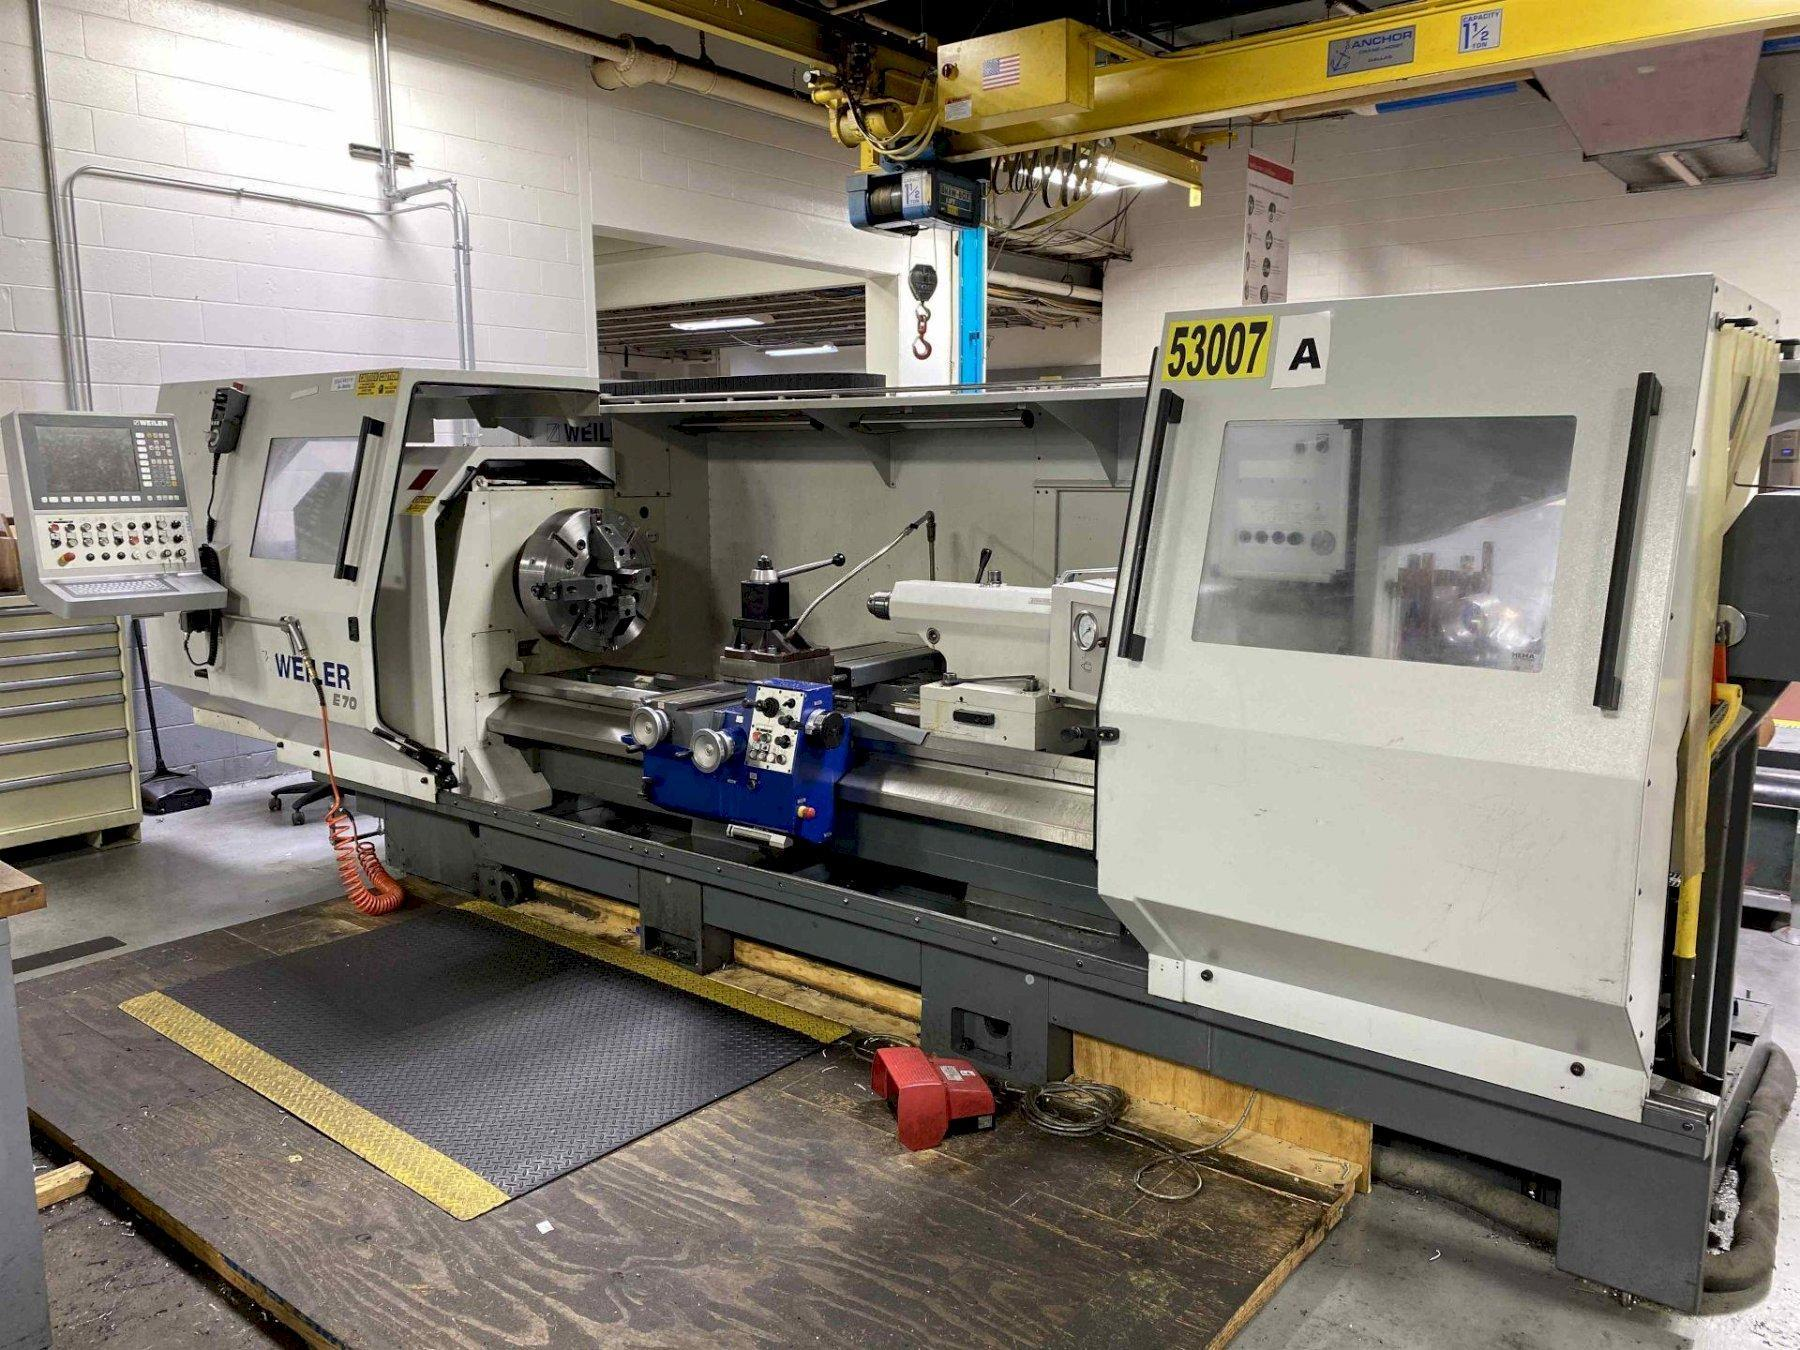 """WEILER E70 x 2000, Siemens 840D CNC Control  20"""" 3-Jaw Chuck, 6"""" Spindle Bore, 28"""" Max Swing, 80"""" Between Centers, Hydraulic Quill, Aloris Tool Post, 48 HP  Motor, New 2015."""